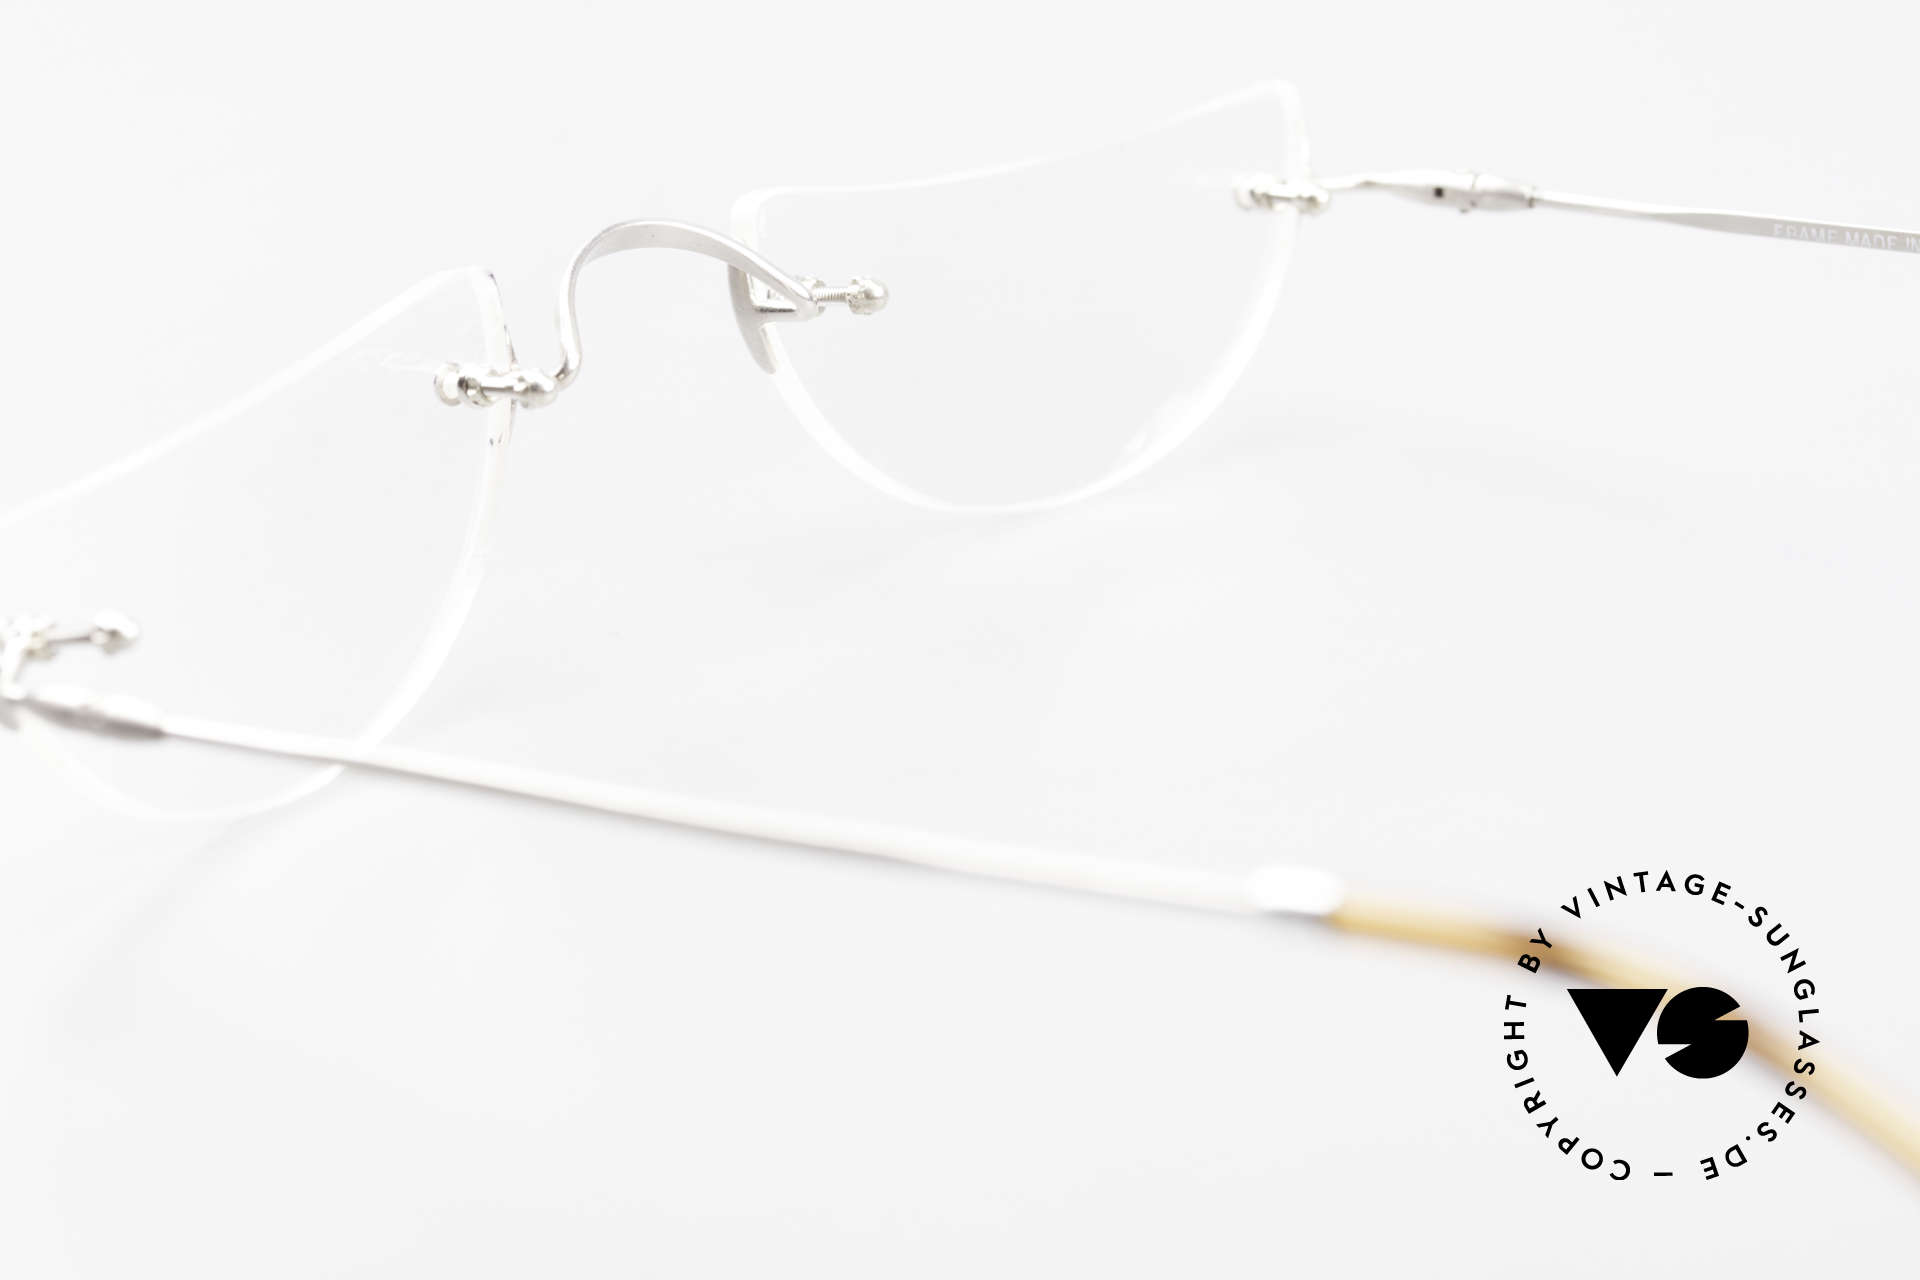 Lunor Classic Reading Rimless Reading Eyeglasses, the LUNOR reading frame comes with an orig. Lunor case, Made for Men and Women